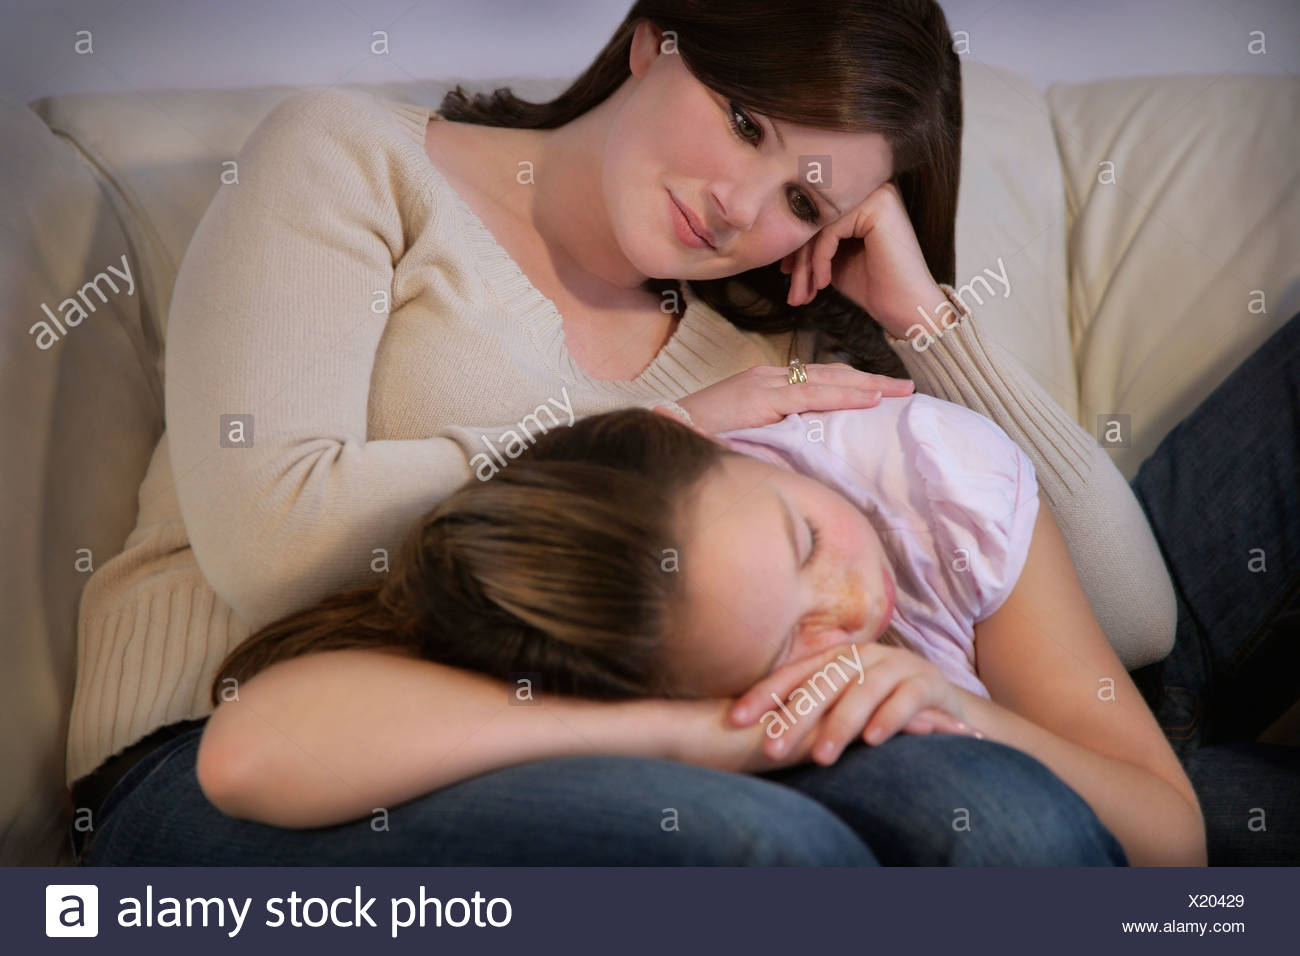 Mother watches tenderly over daughter - Stock Image